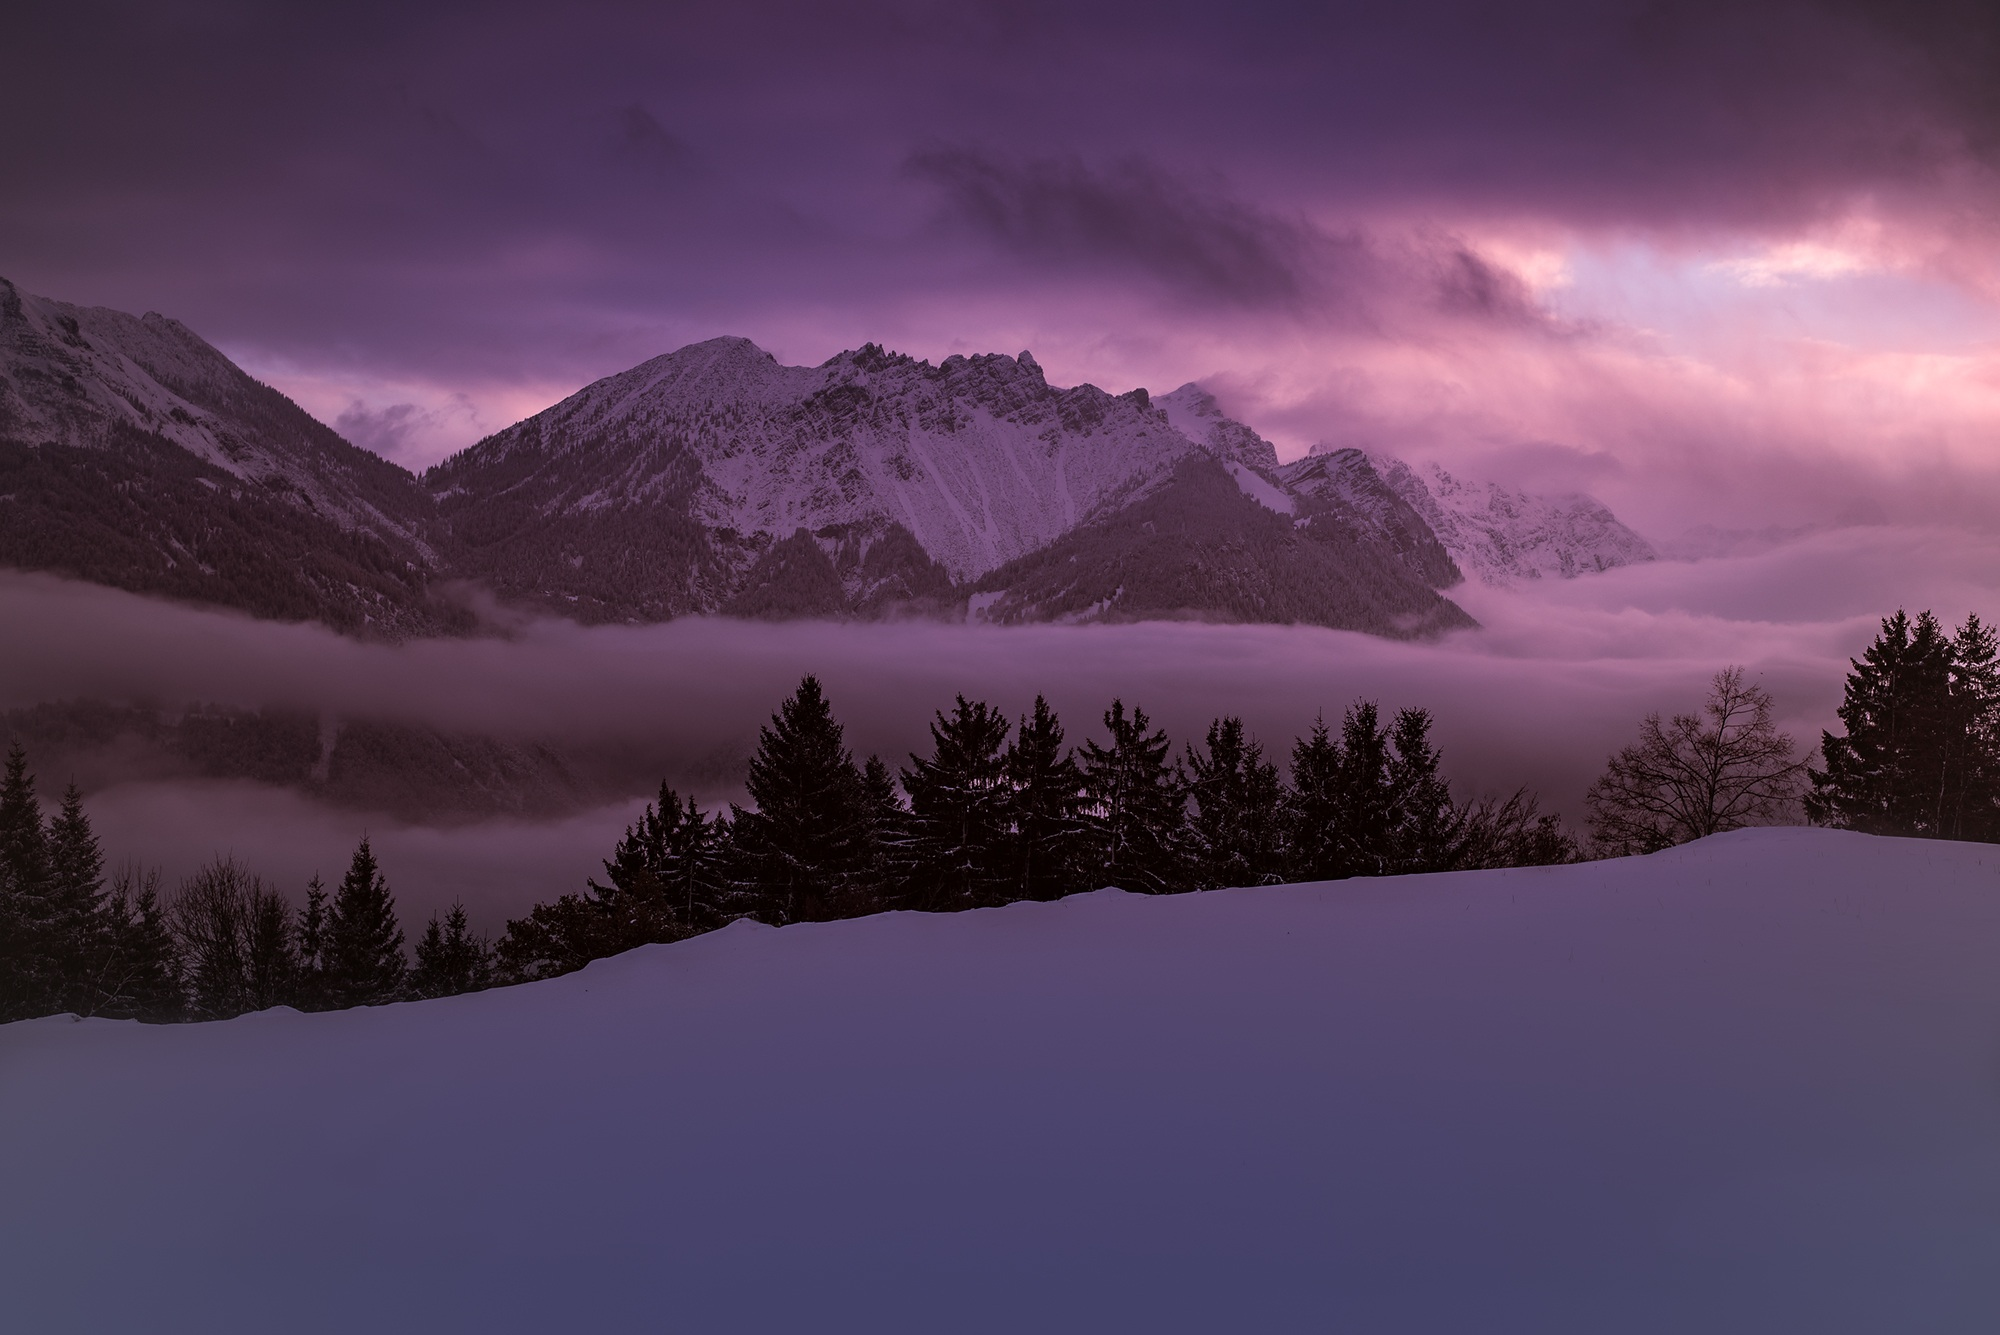 Purple Wallpaper Hd Brown Mountain Cover By Snow 183 Free Stock Photo